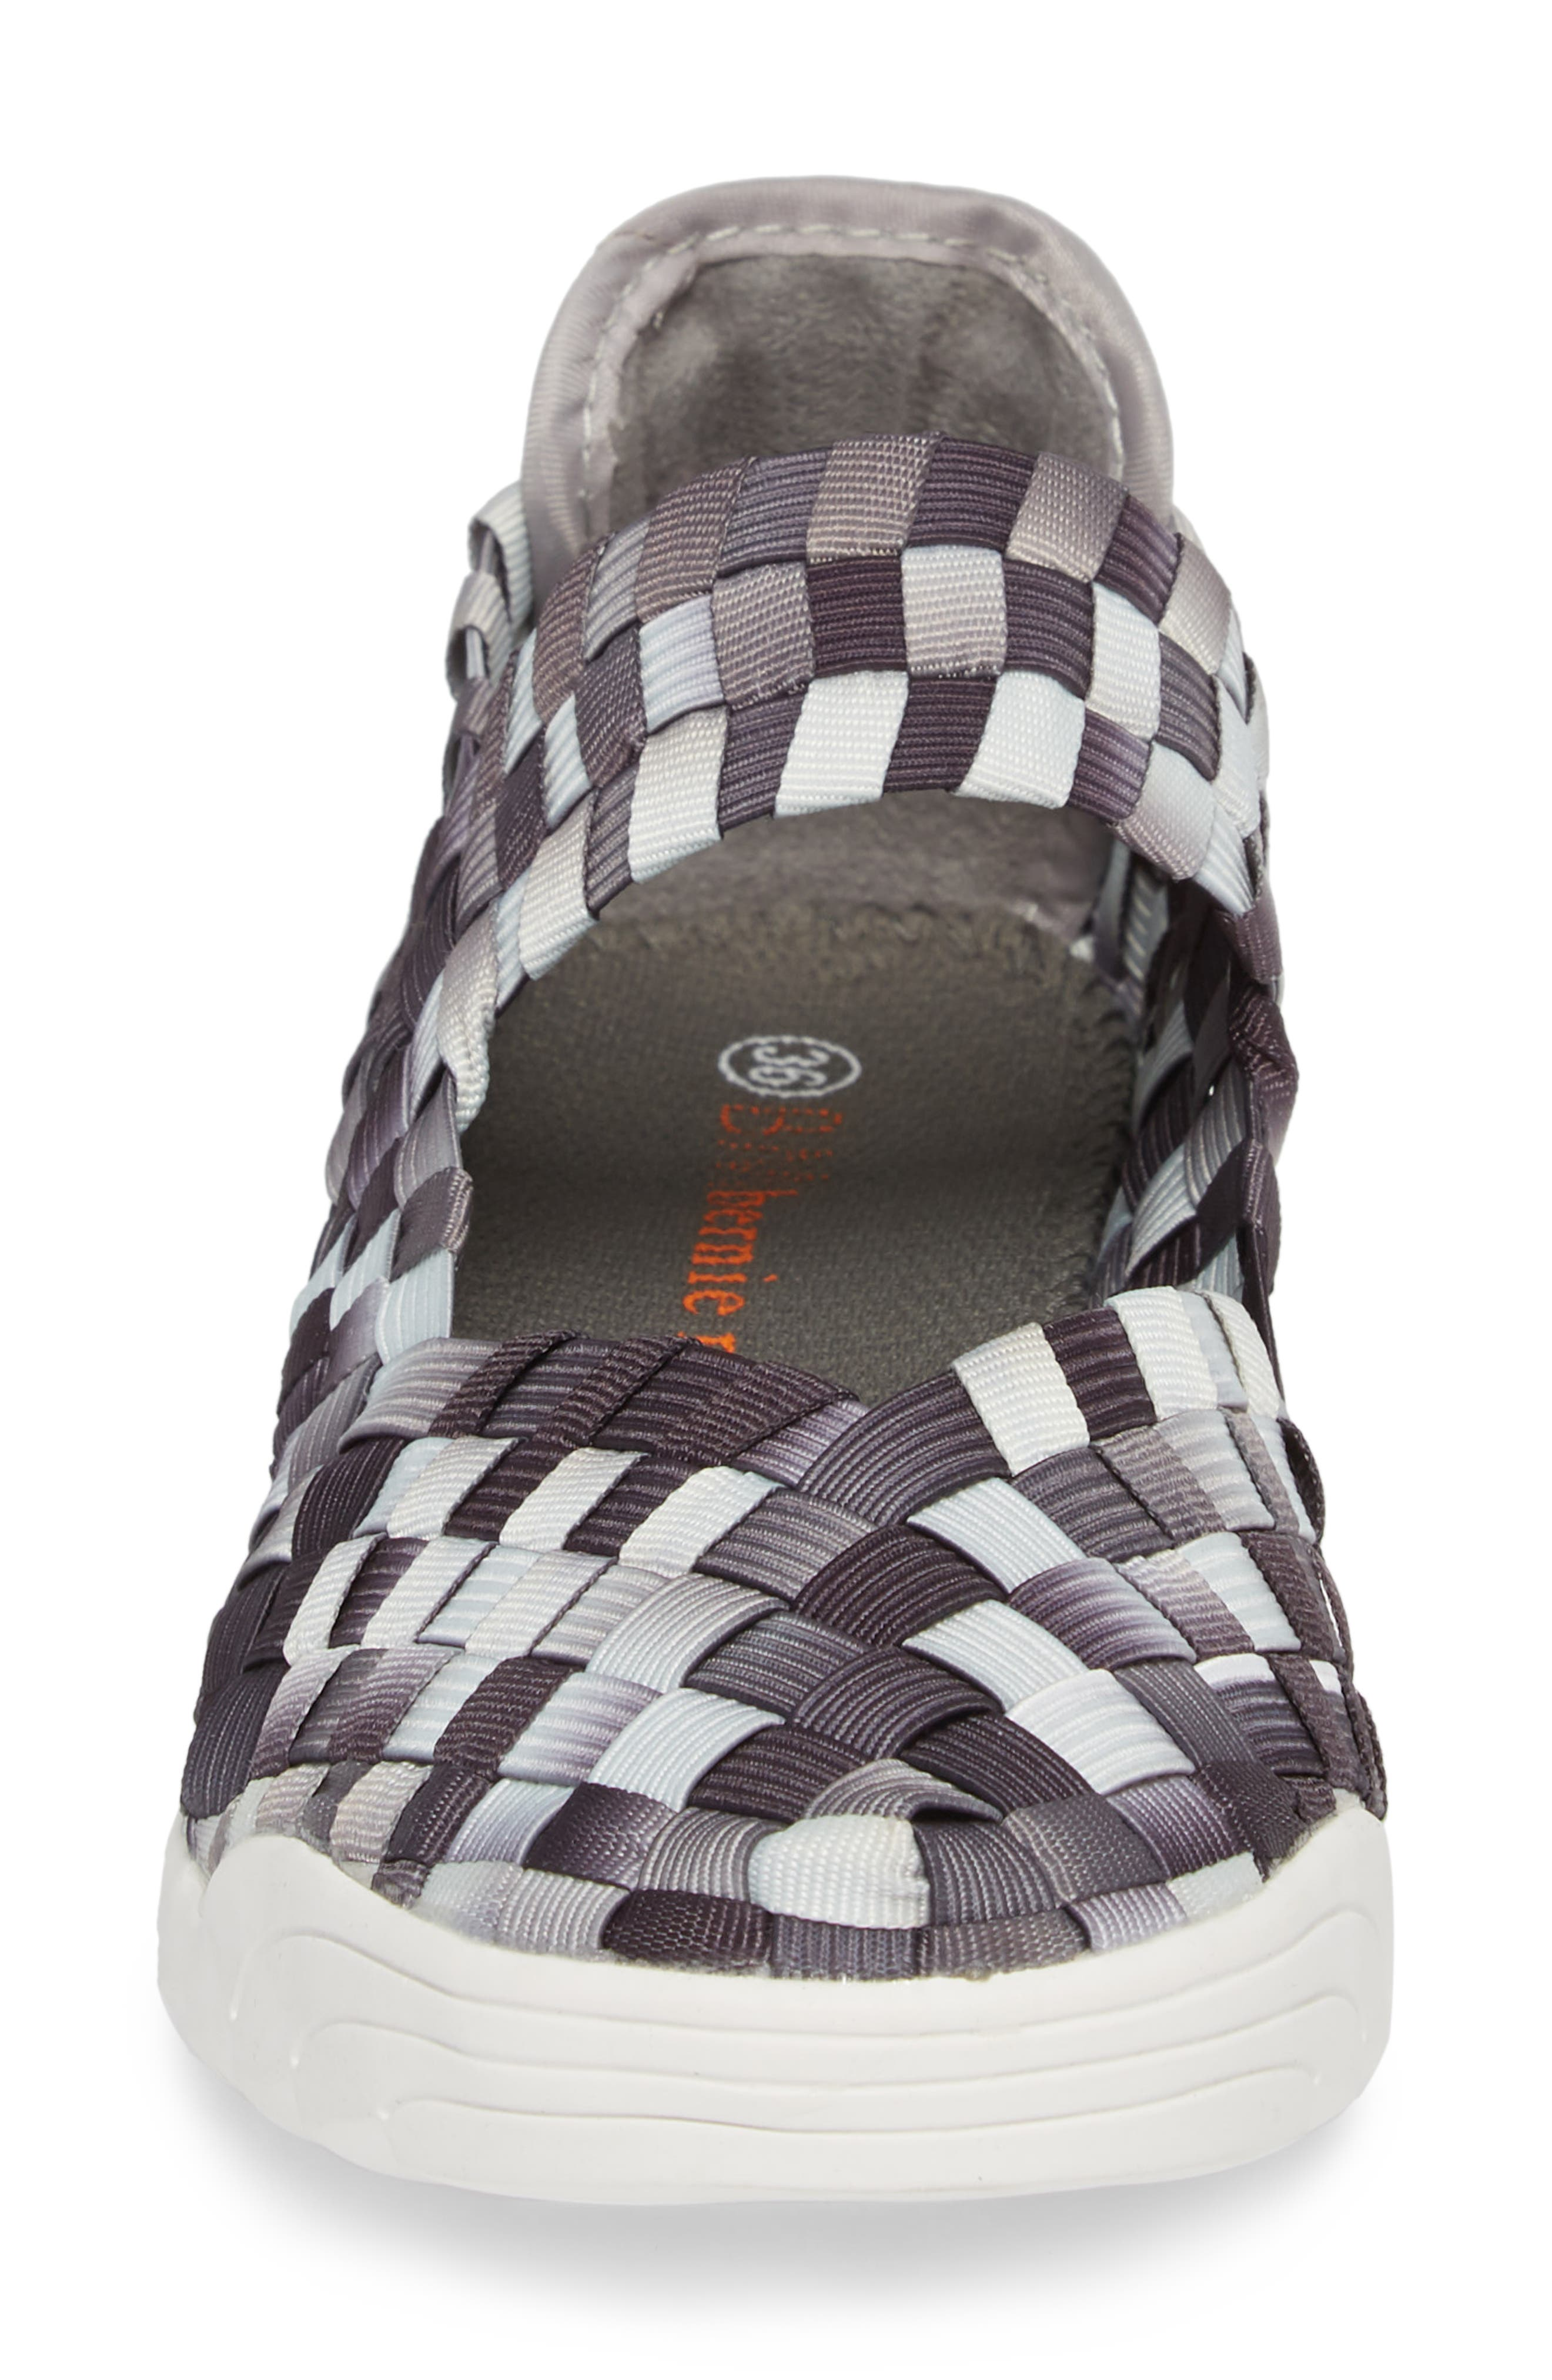 Rigged Charm Sneaker,                             Alternate thumbnail 4, color,                             GREY OMBRE